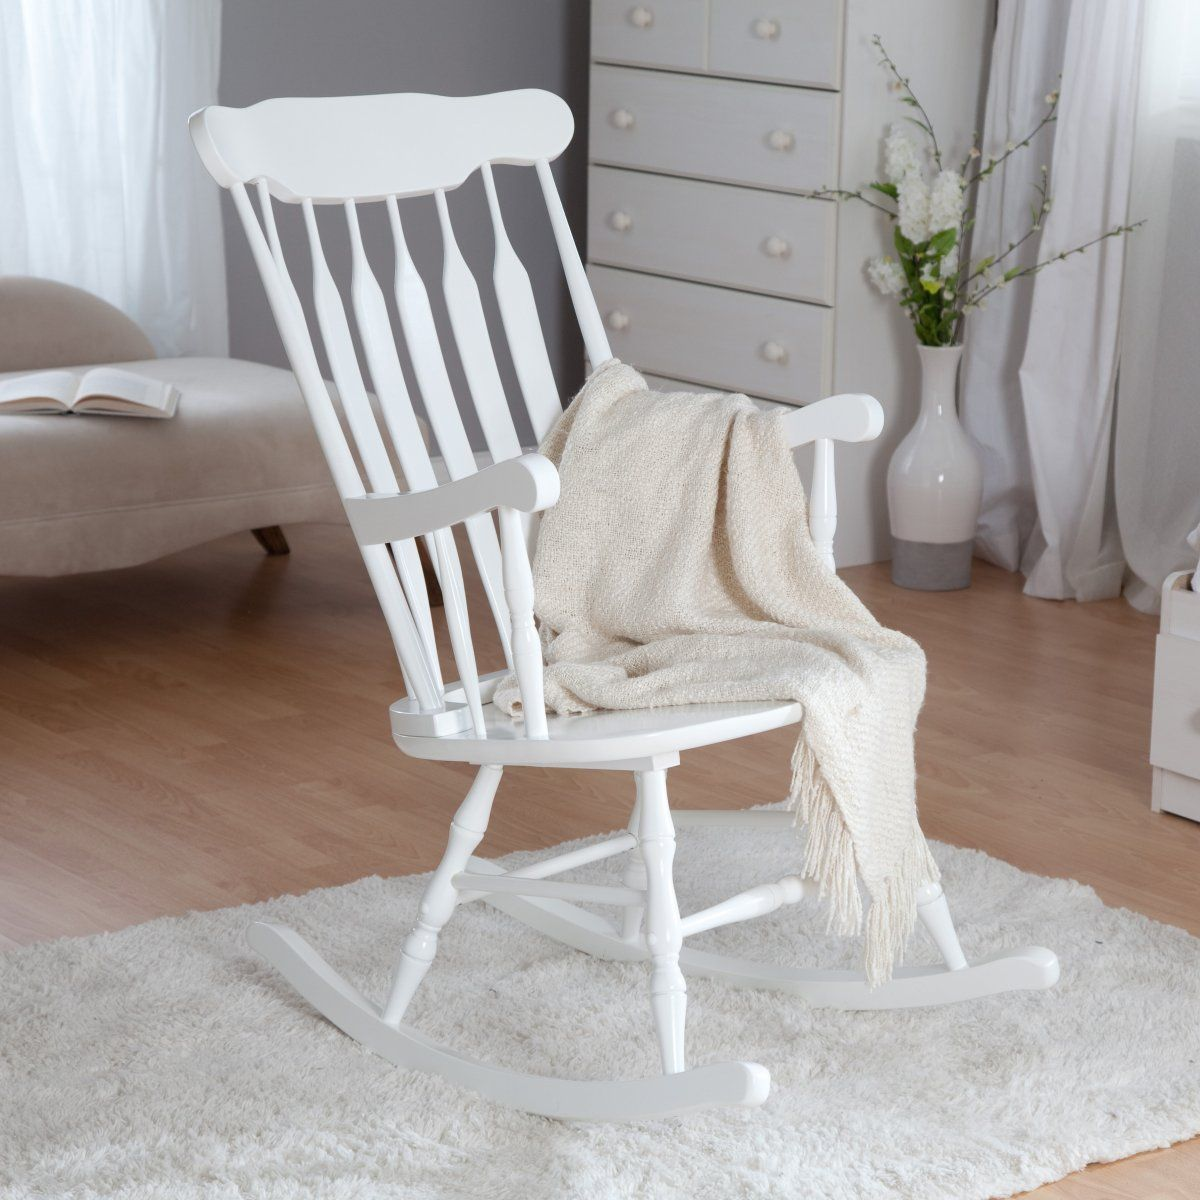 KidKraft Nursery Rocker - White - Rocking Chairs at Hayneedle